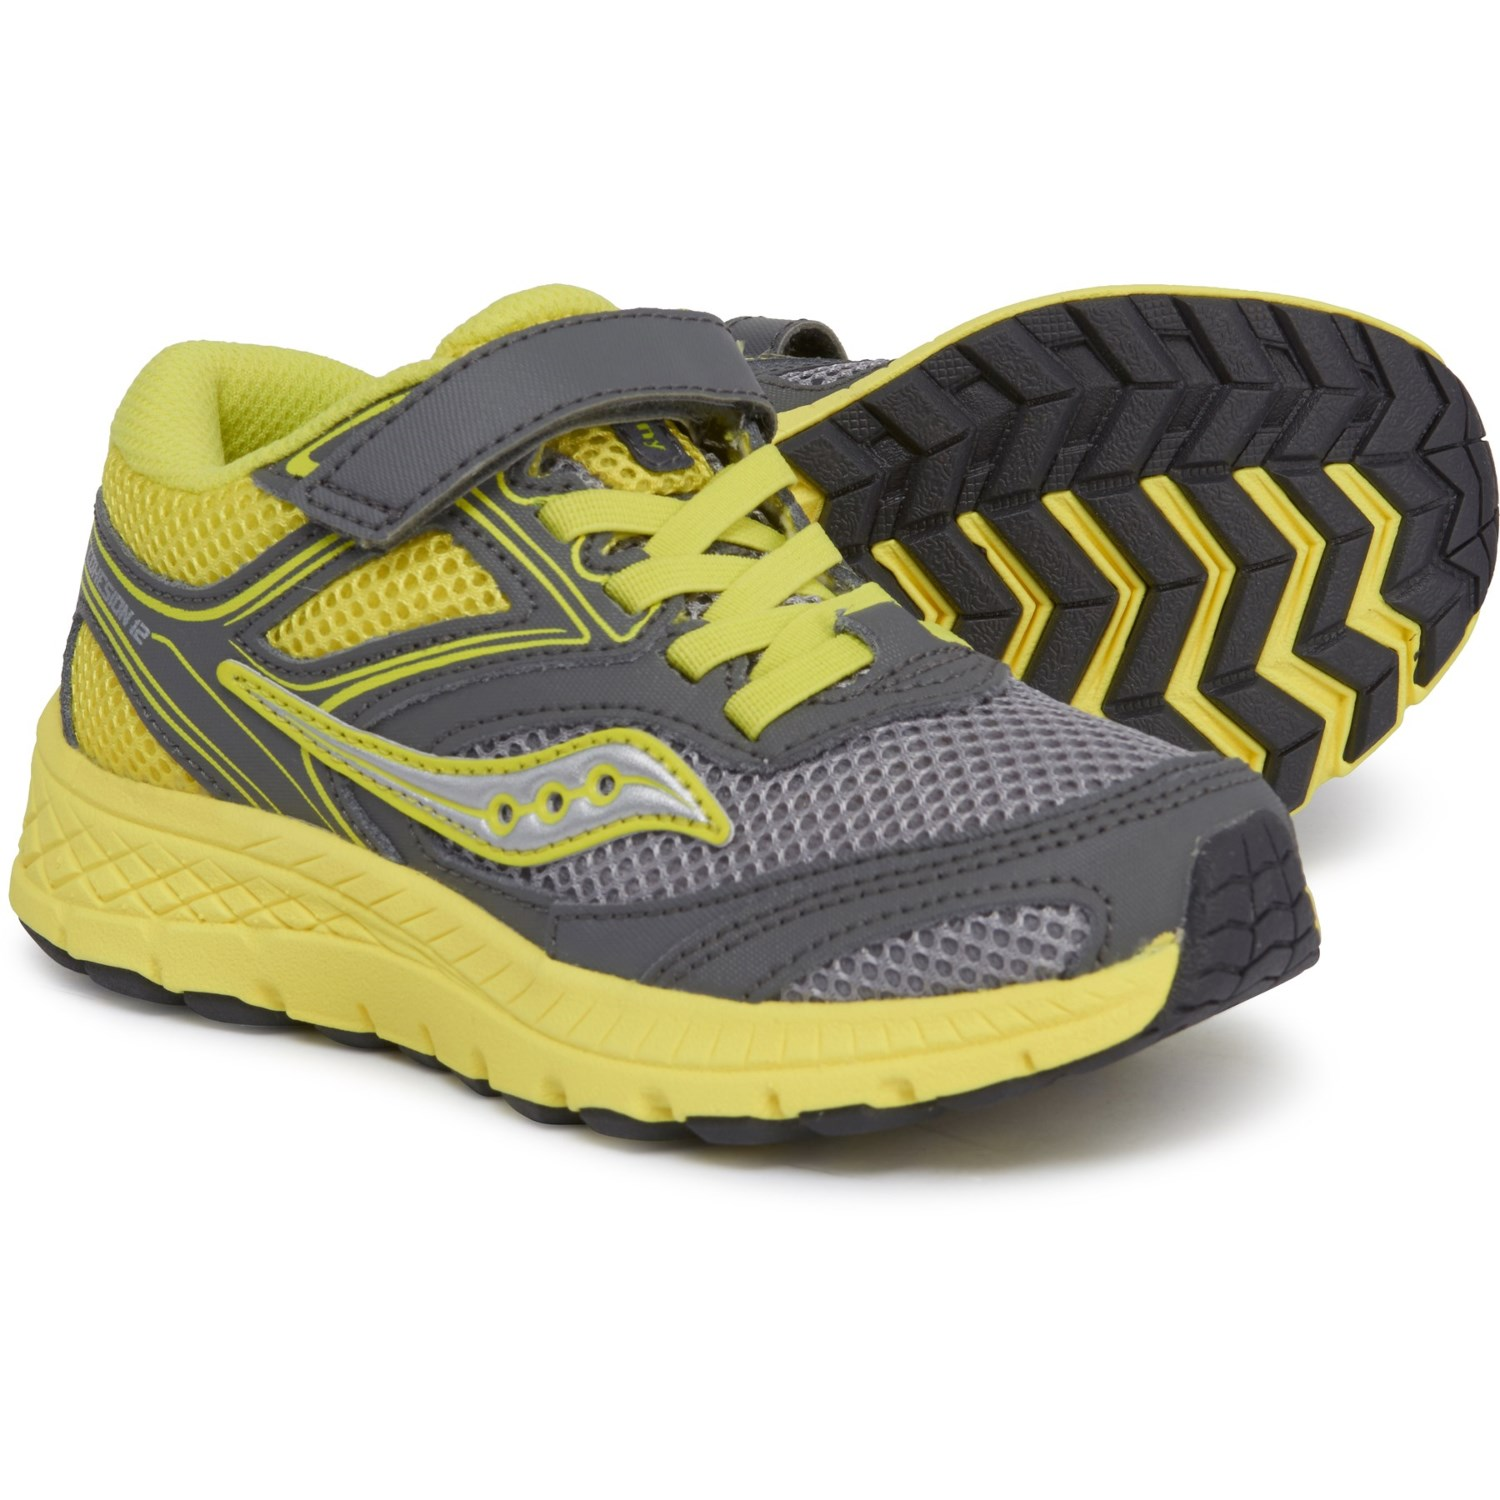 4e45dc53 Saucony Cohesion 12 A/C Running Shoes (For Boys) - Save 37%